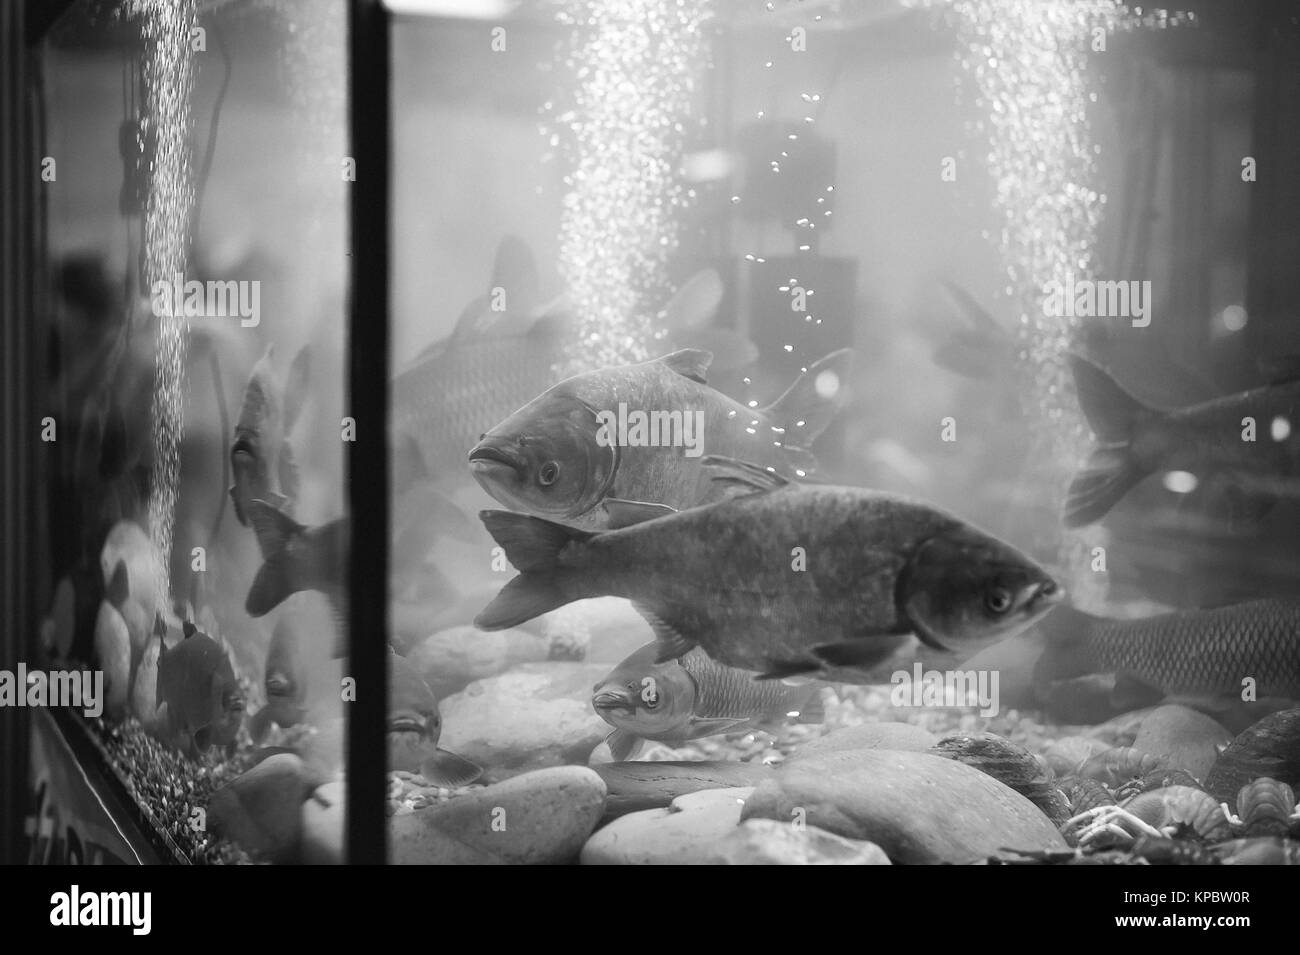 river commercial fish in the aquarium, agricultural achievements - Stock Image